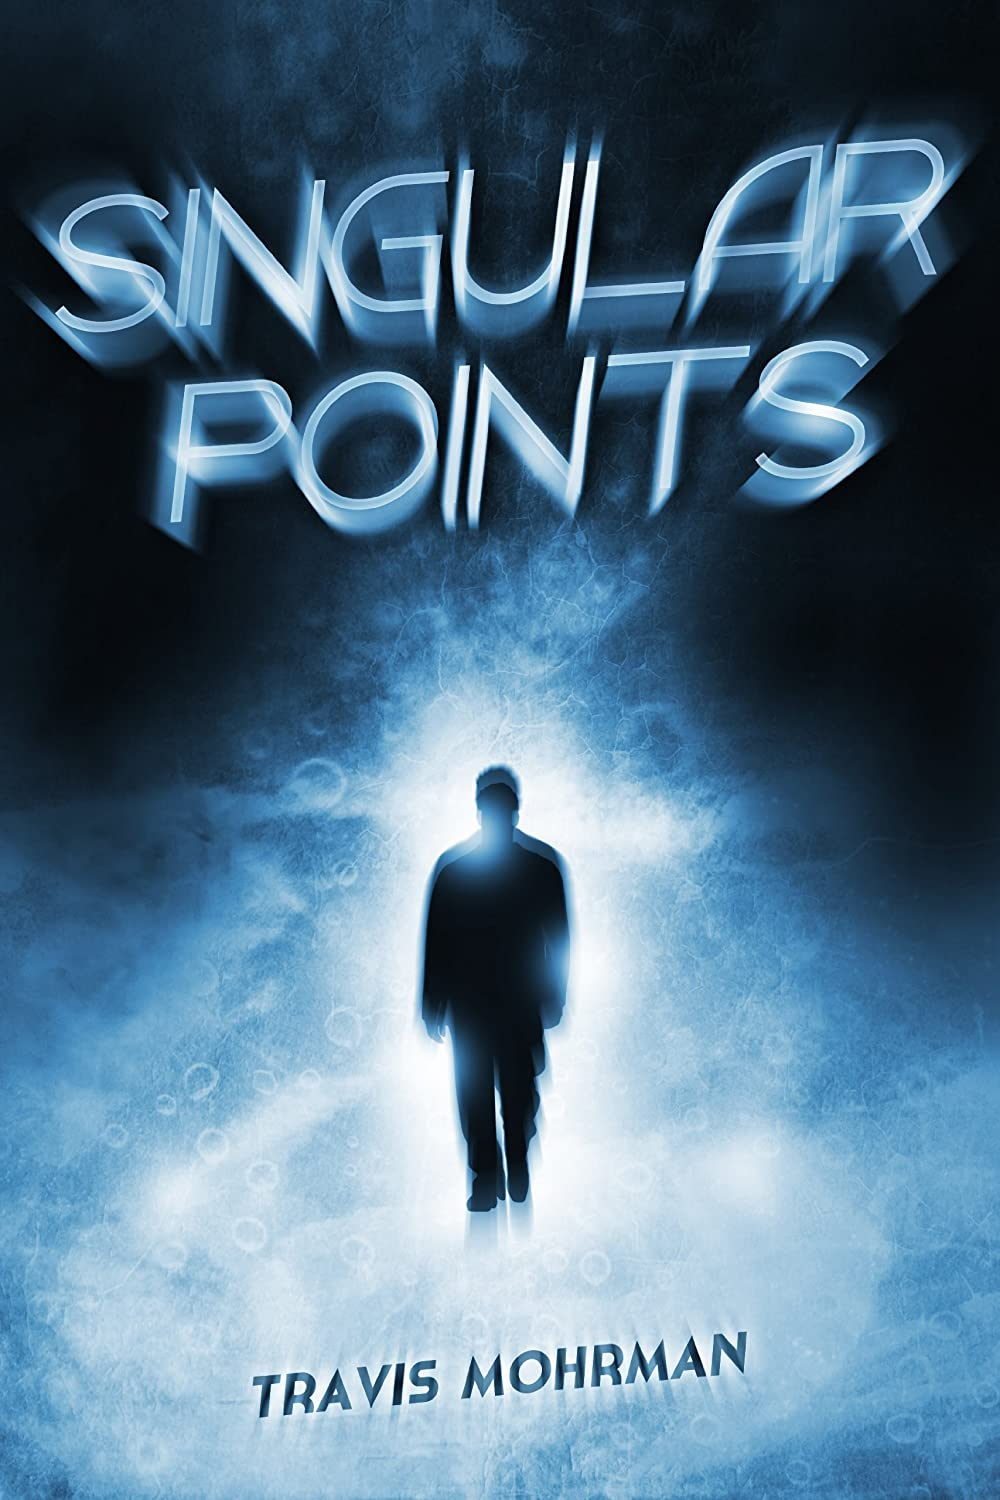 Singular Points by Travis Mohrman